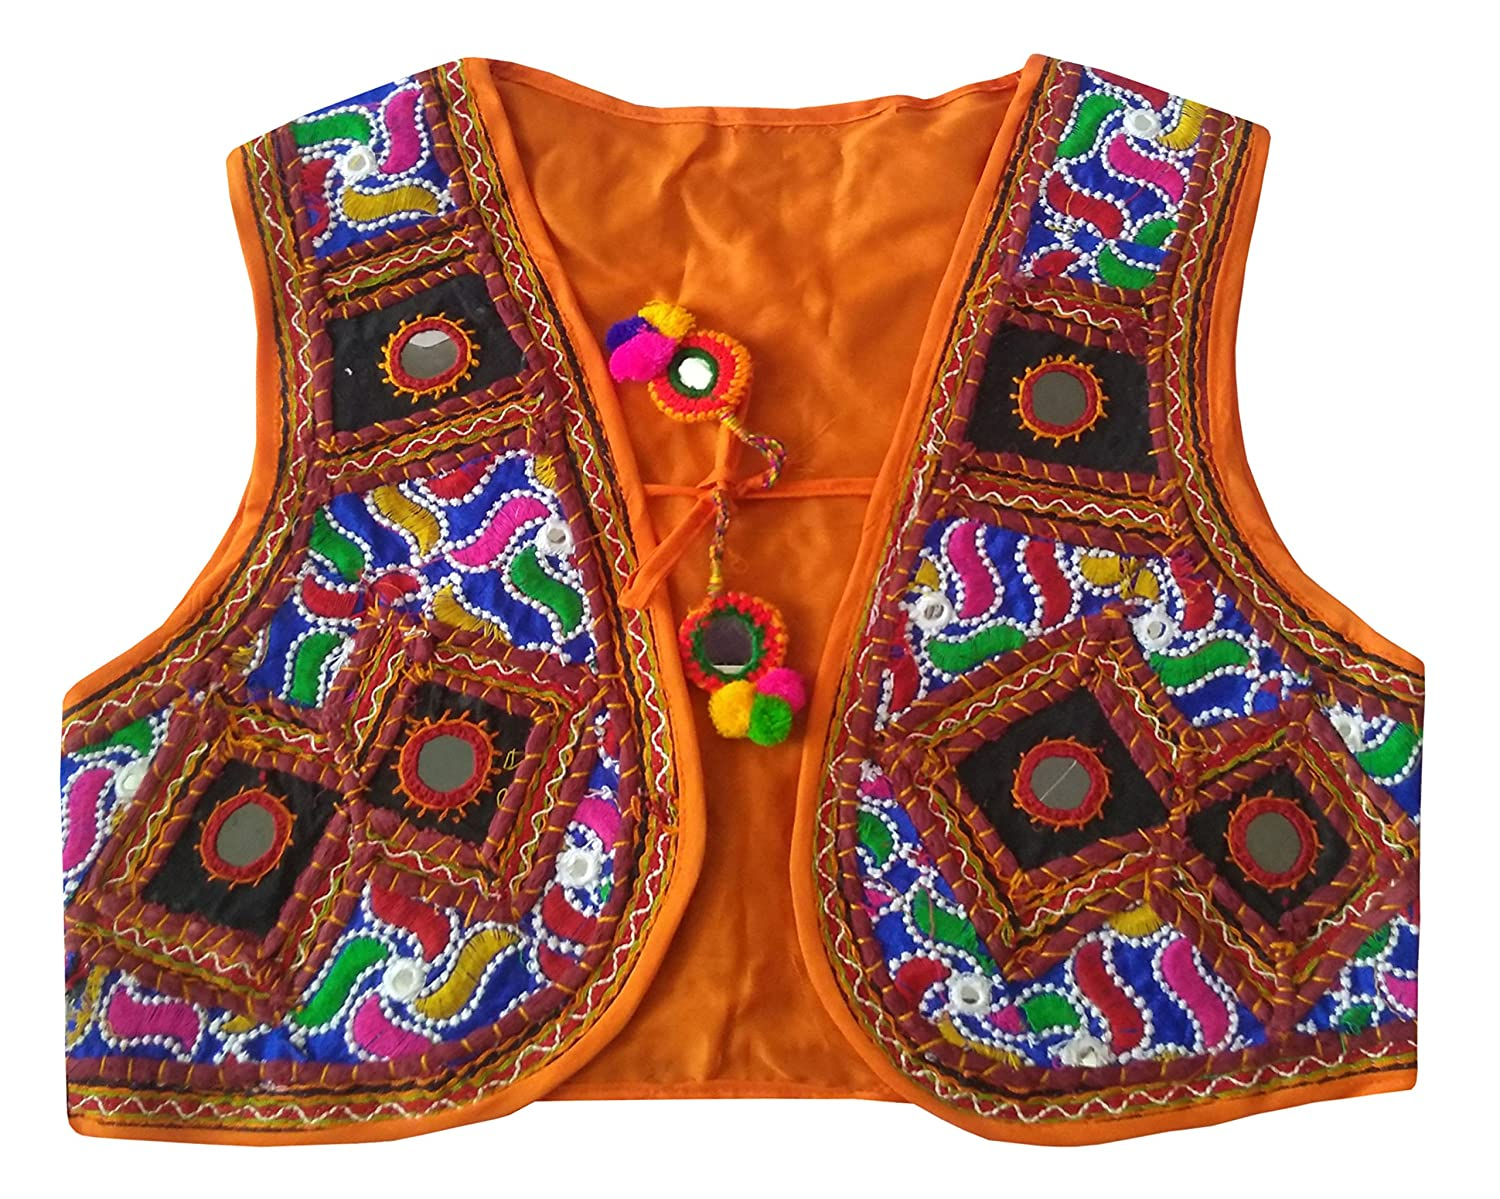 b46e1b740a60 PULAA Orange Original Mirror Work Vest - Banjara Style Jacket ...